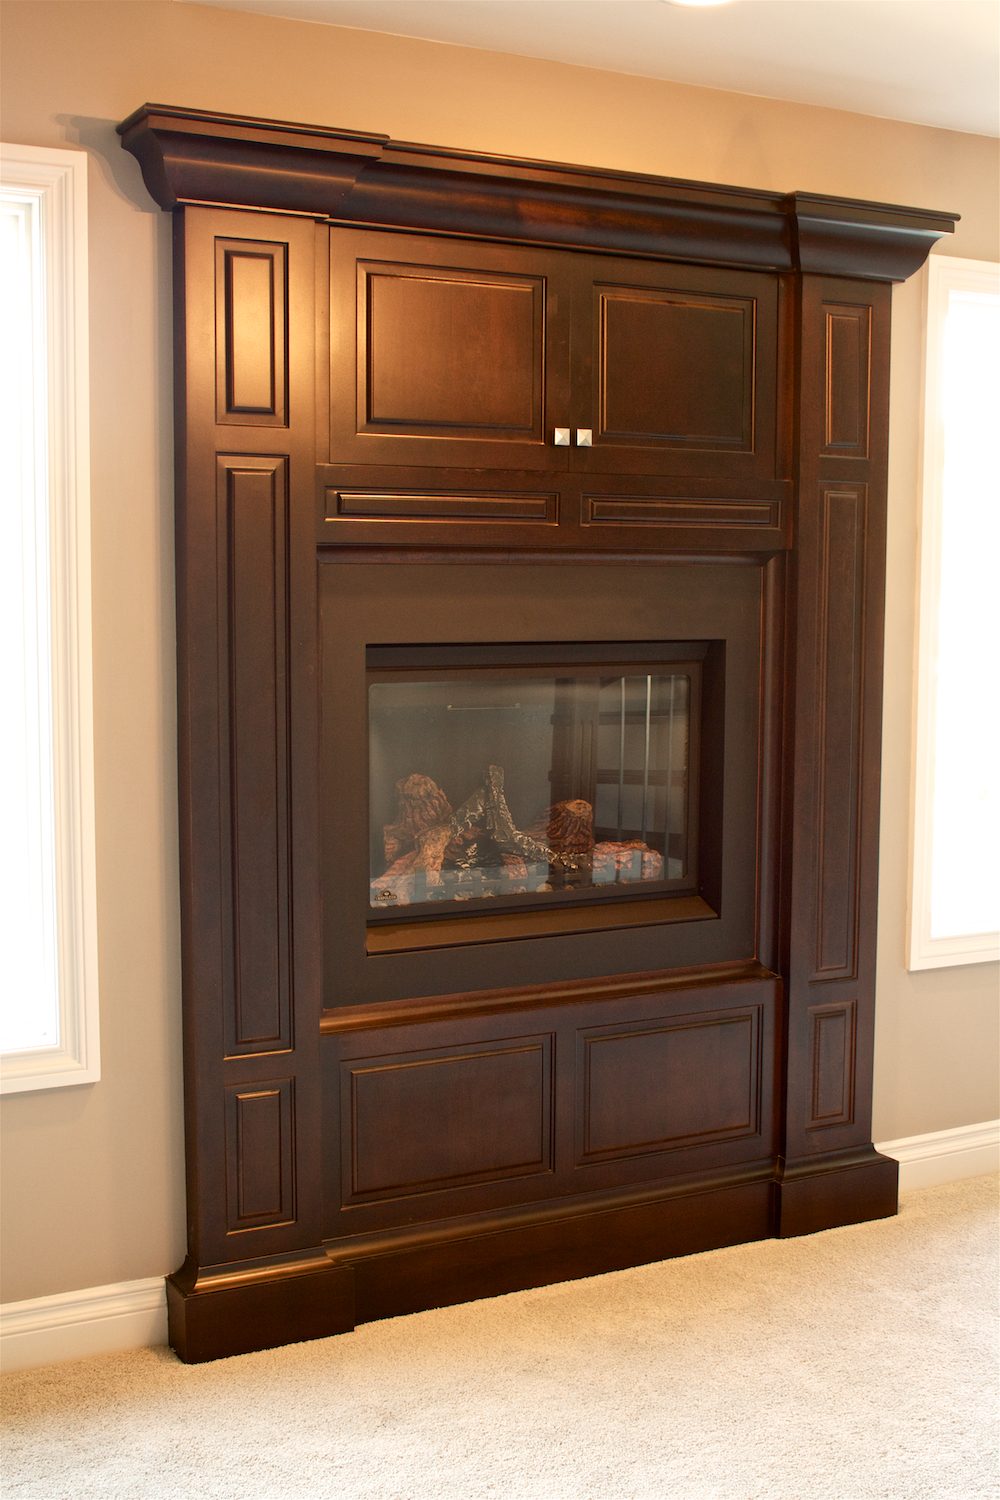 Fireplace Surround 2.jpg